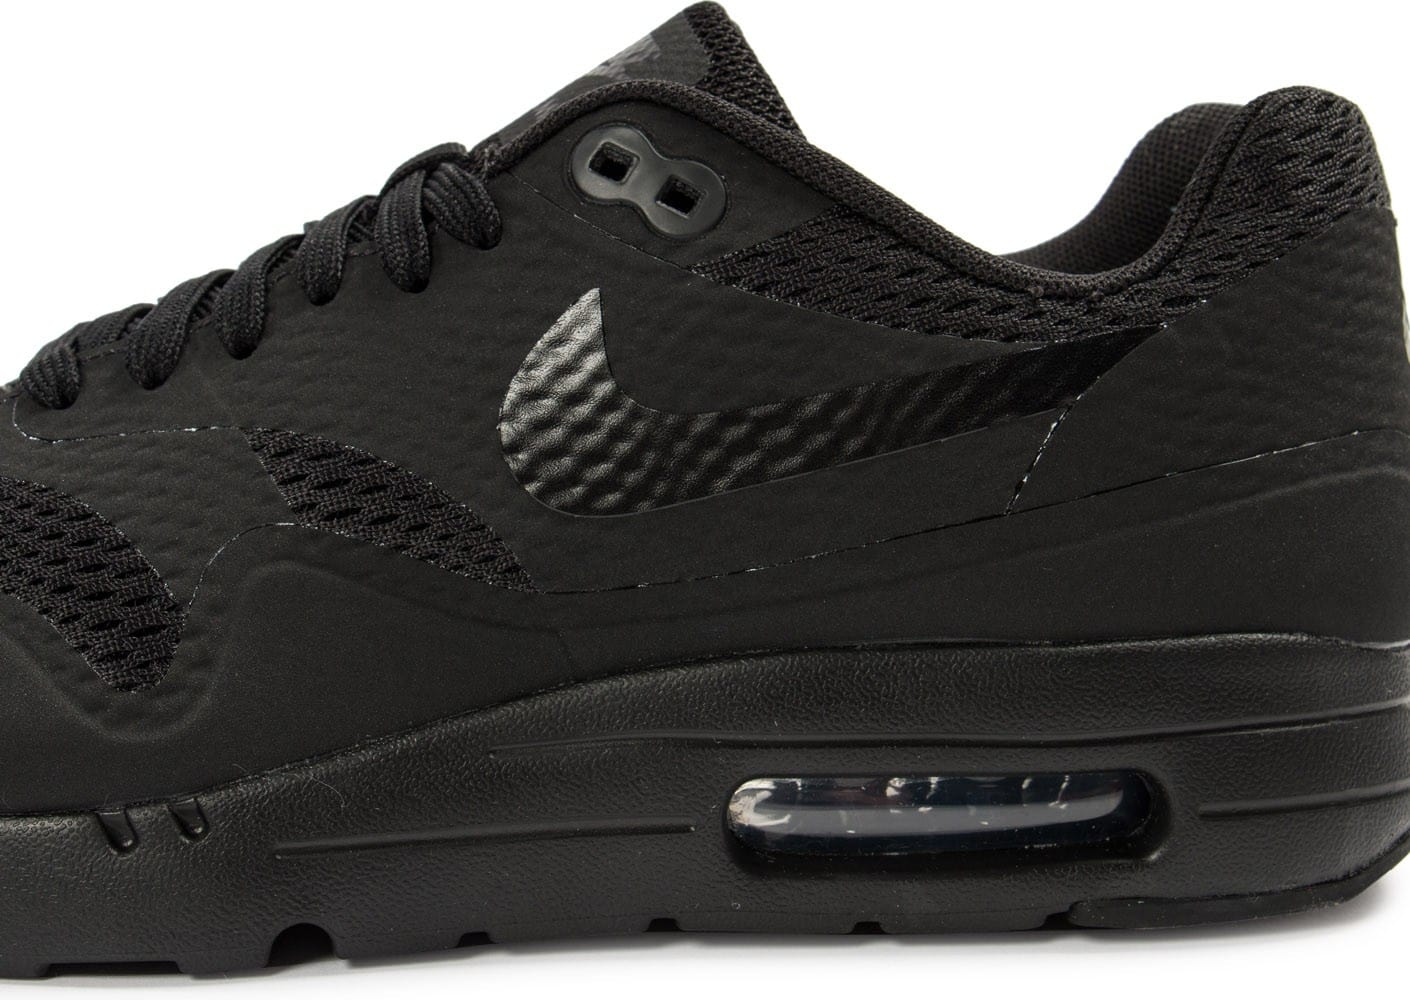 buy online bbe4c af050 ... real chaussures nike air max 1 ultra essential noire vue dessus 7ce64  aba3a